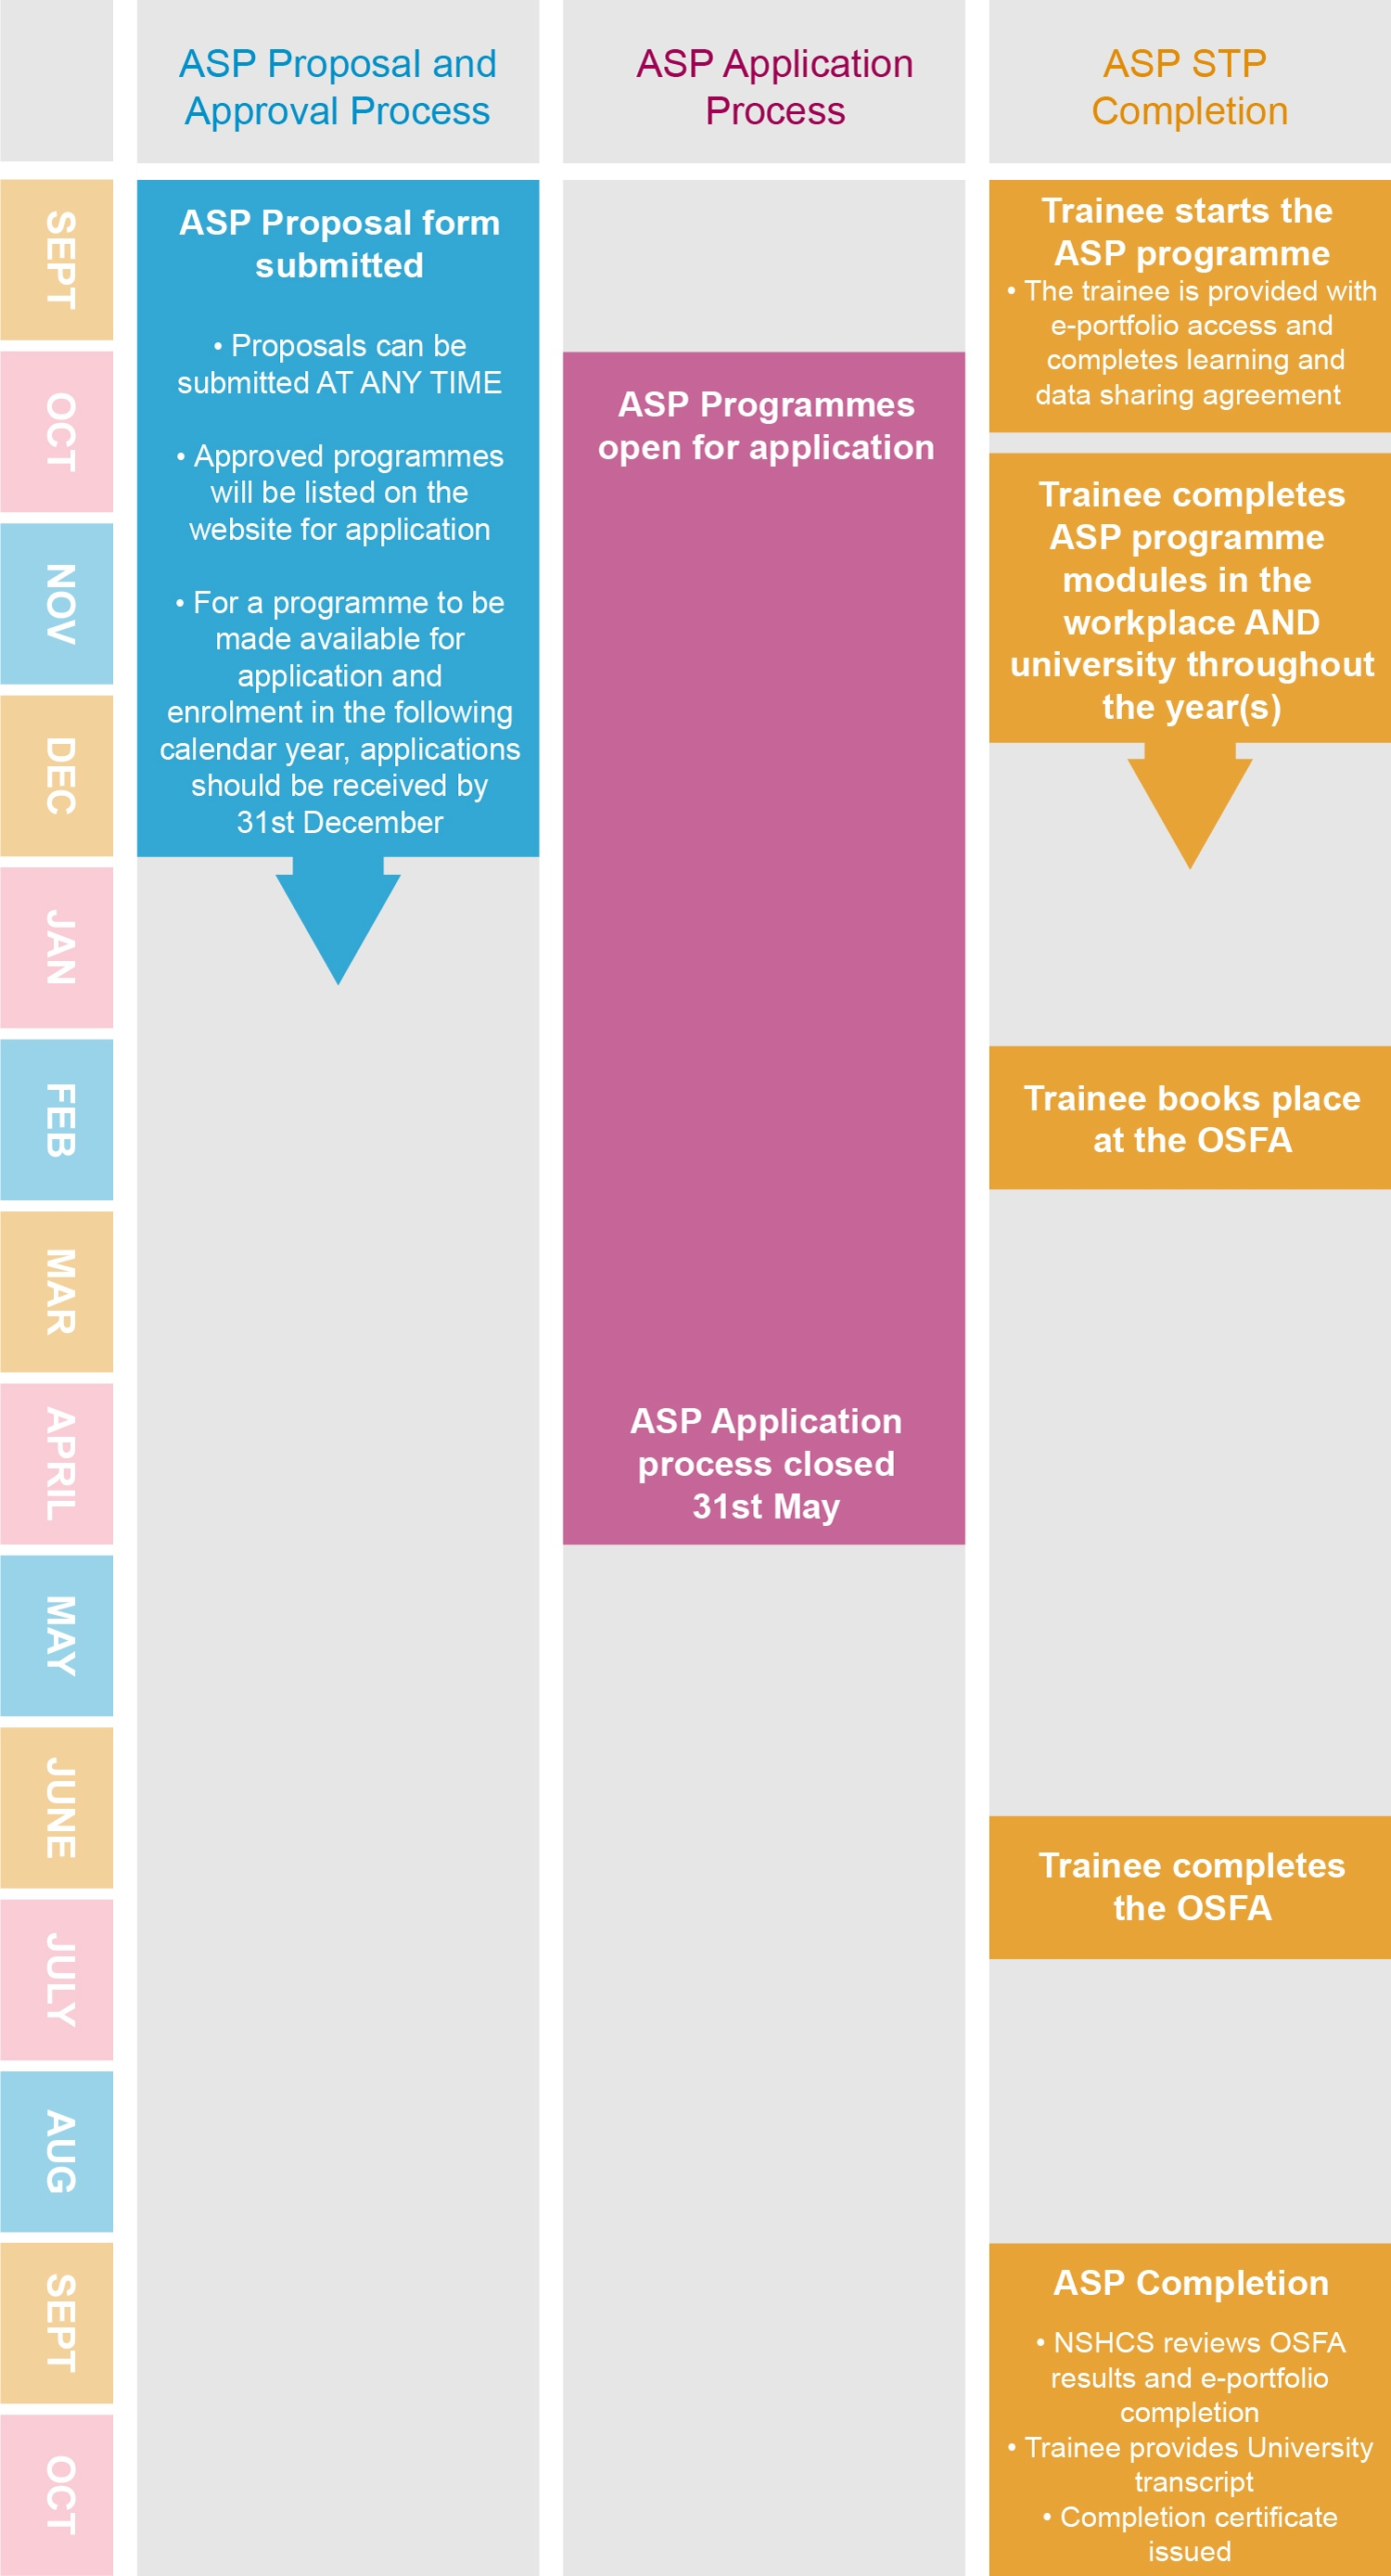 Graphic showing the ASP proposal, process and completion timeline